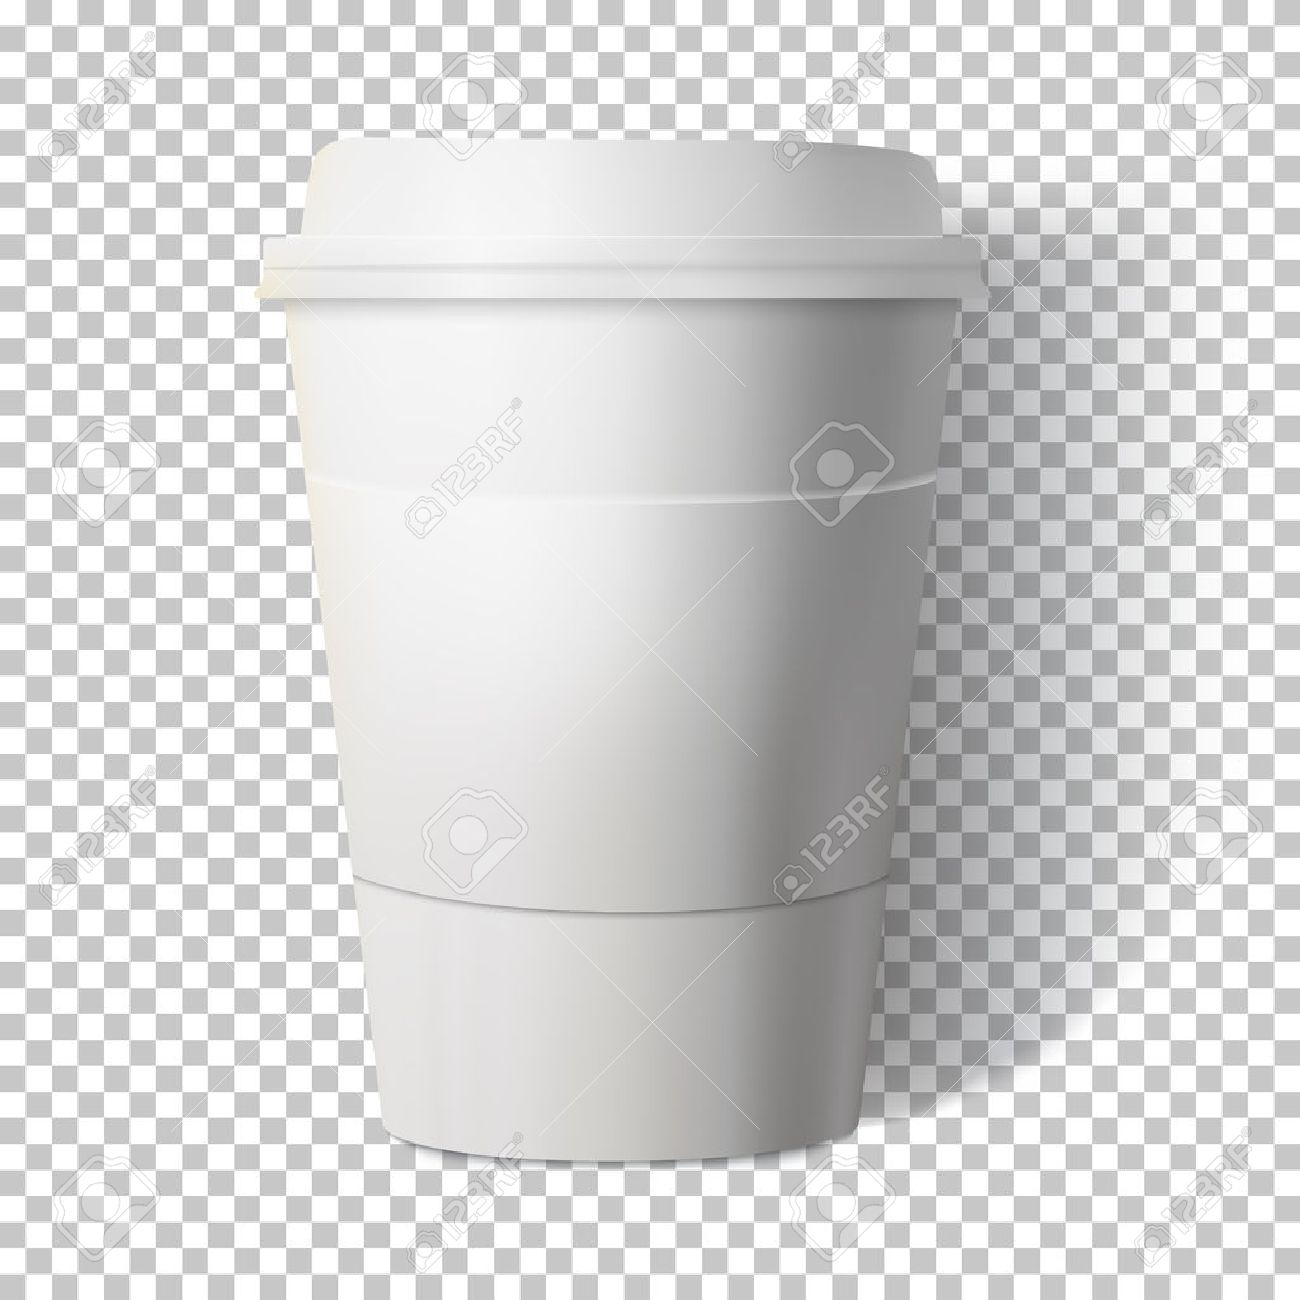 Coffee cup transparent - Illustration Of A Coffee Cup Isolated On Transparent Background Stock Vector 52310541